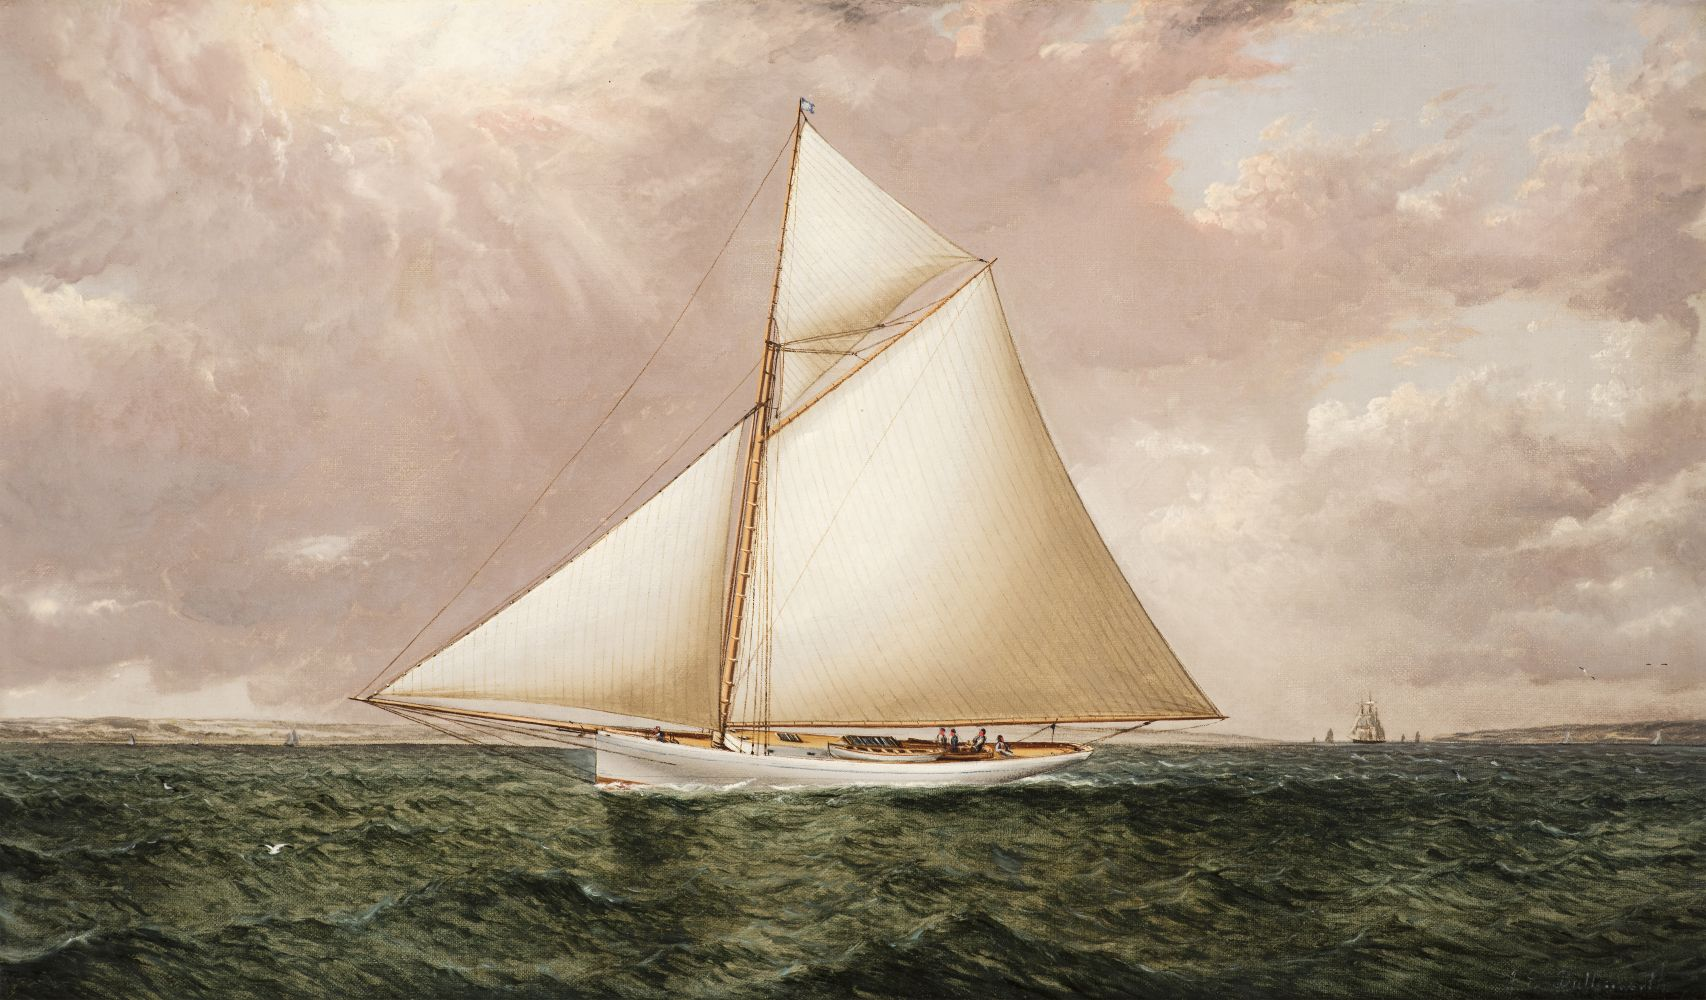 James E. Buttersworth (1817–1894), A Gaff Rigged Racing Cutter, c. 1893, oil on canvas, 12 x 20 in., signed lower right: Jas. Buttersworth